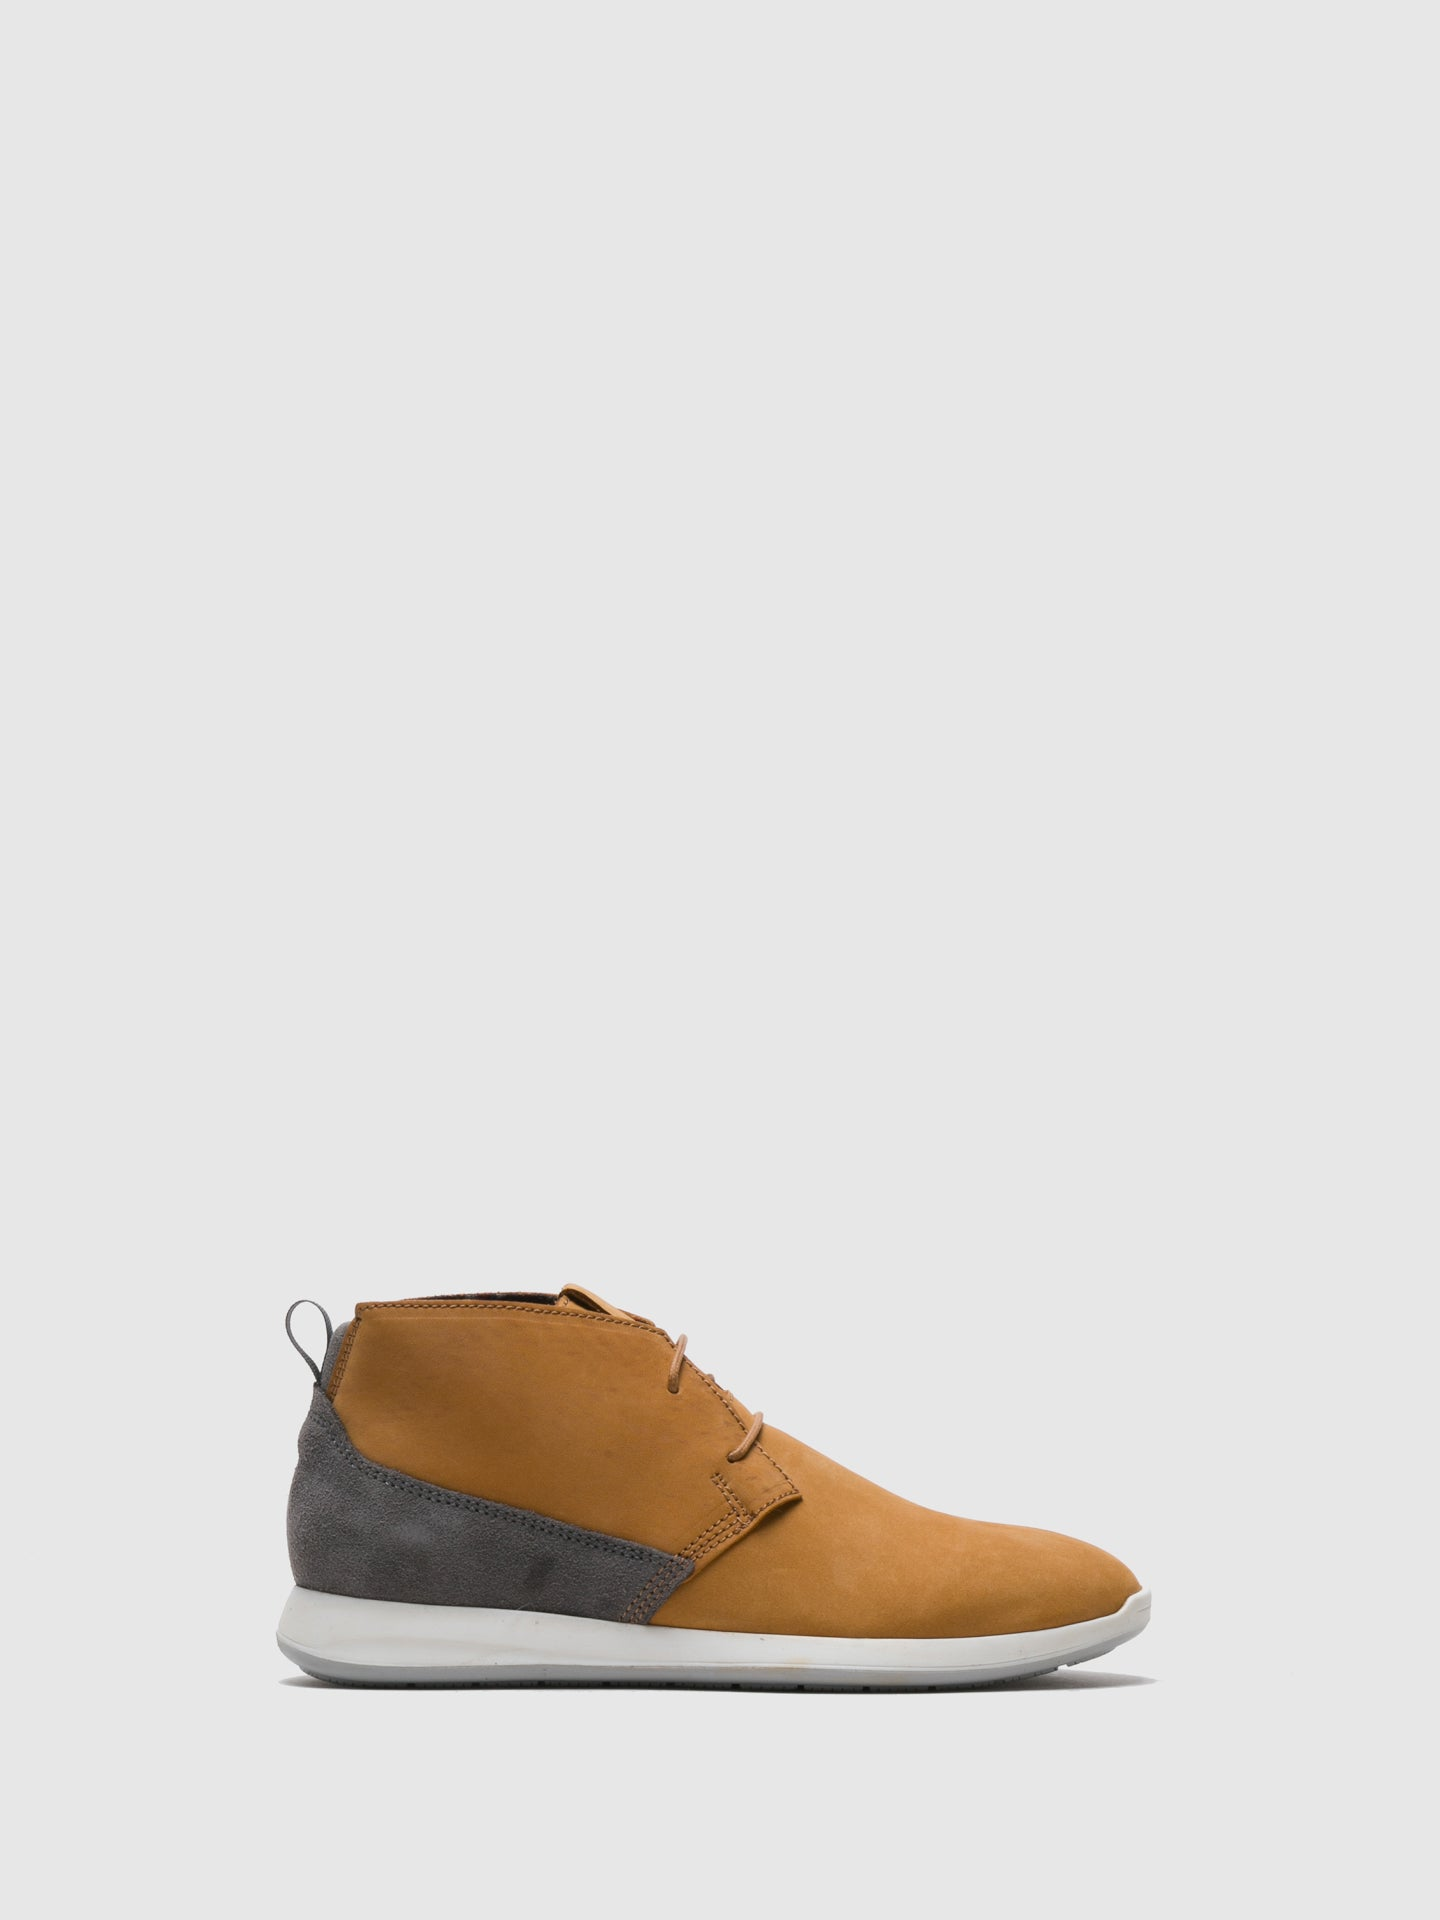 BEPPI High-Top-Sneakers in Camel